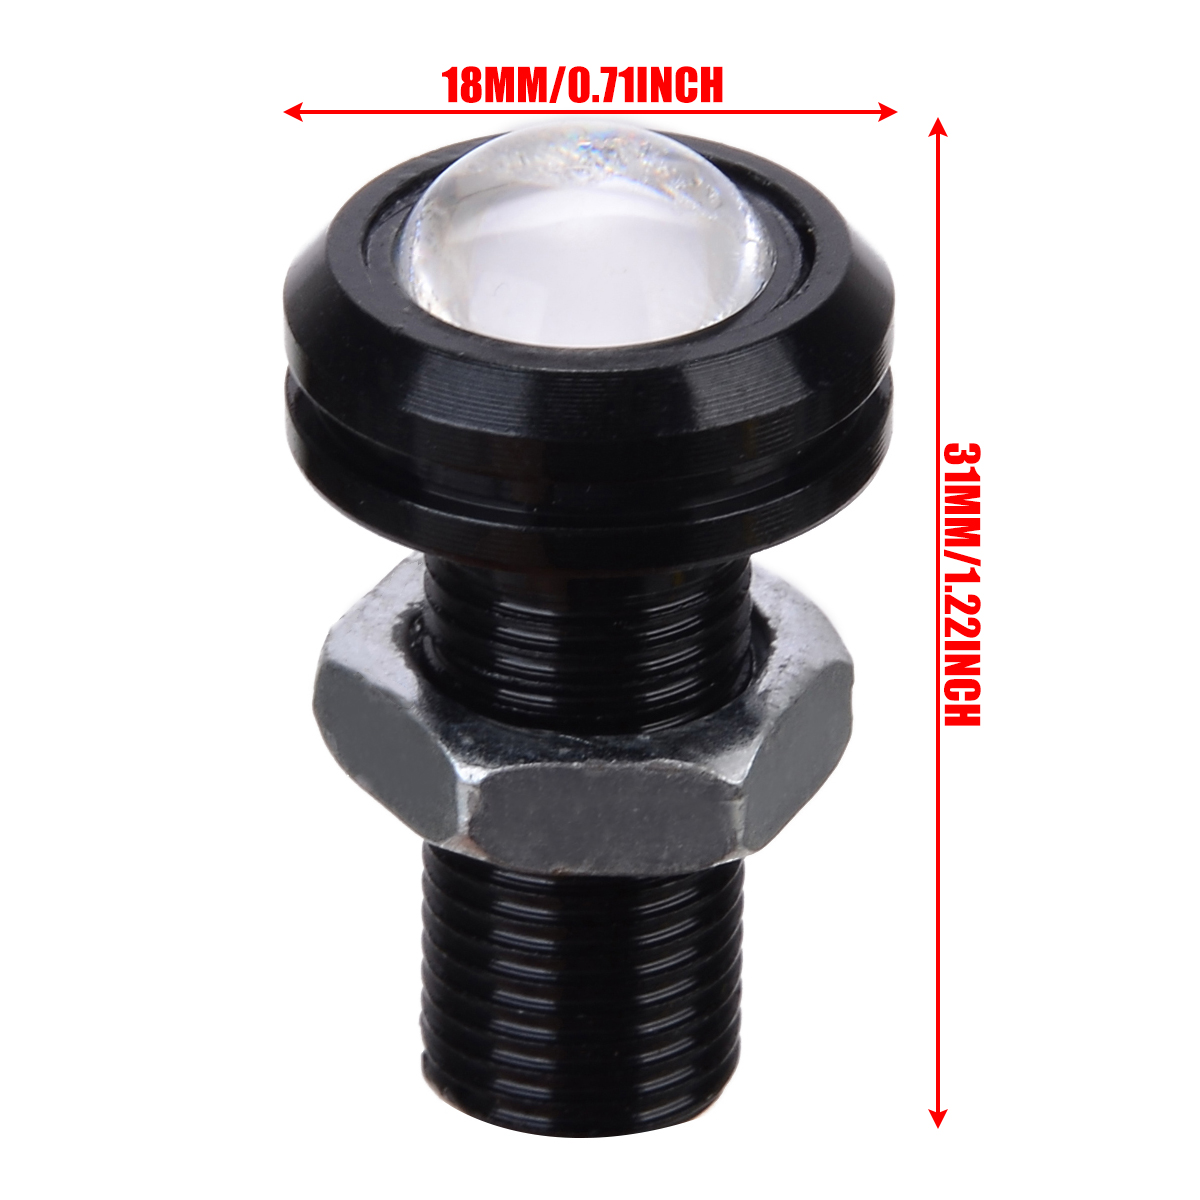 Image 5 - Universal Boat Drain Plug Light Lamp 4pcs/set Blue LED Waterproof Underwater Fish Boat Light Parts Accessories-in Marine Hardware from Automobiles & Motorcycles